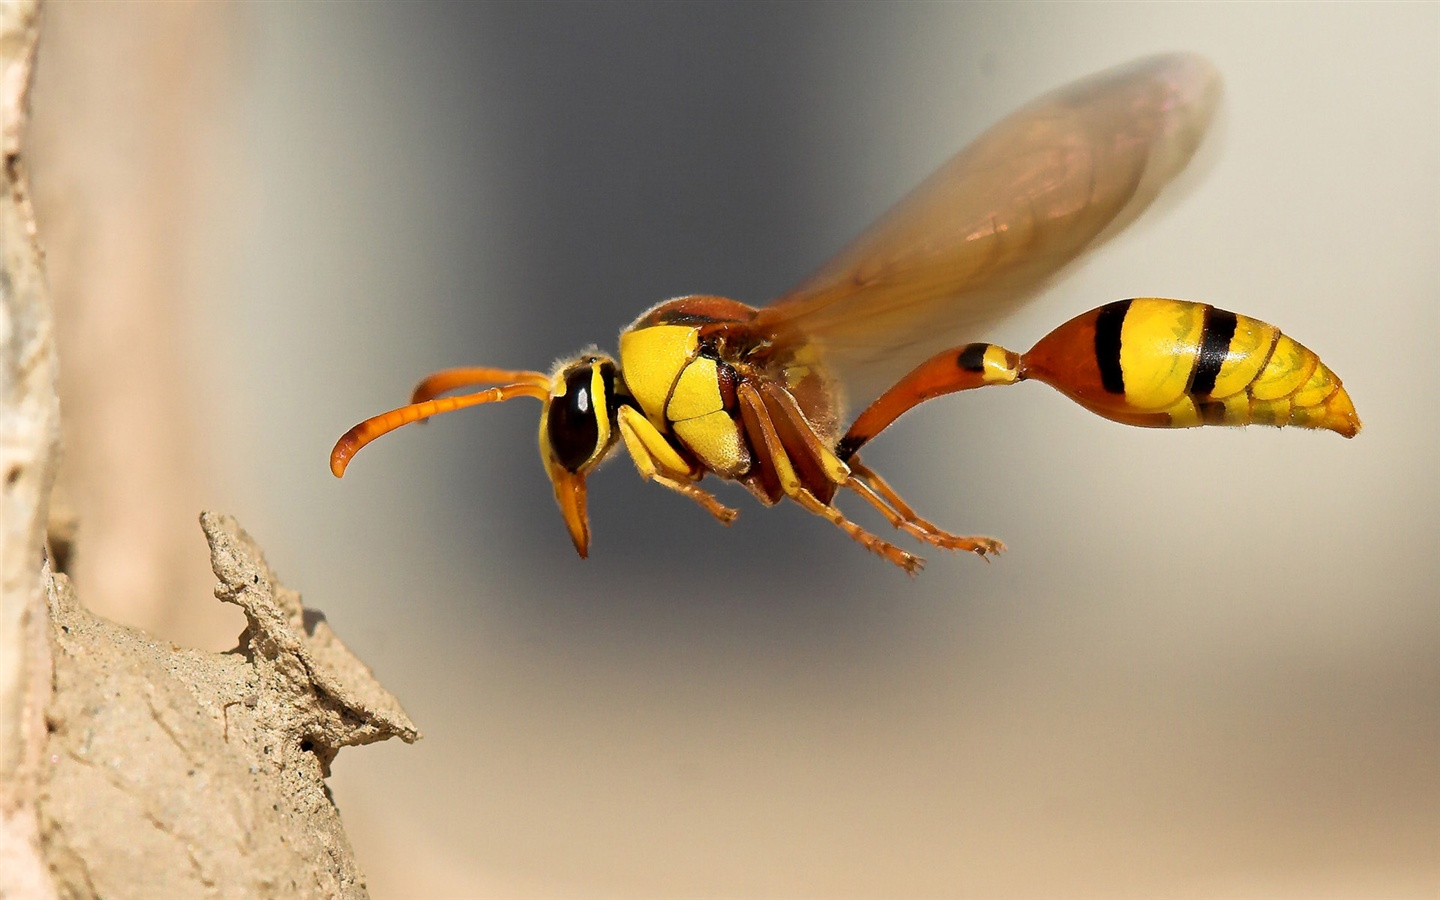 Wasp Insect Close-Up